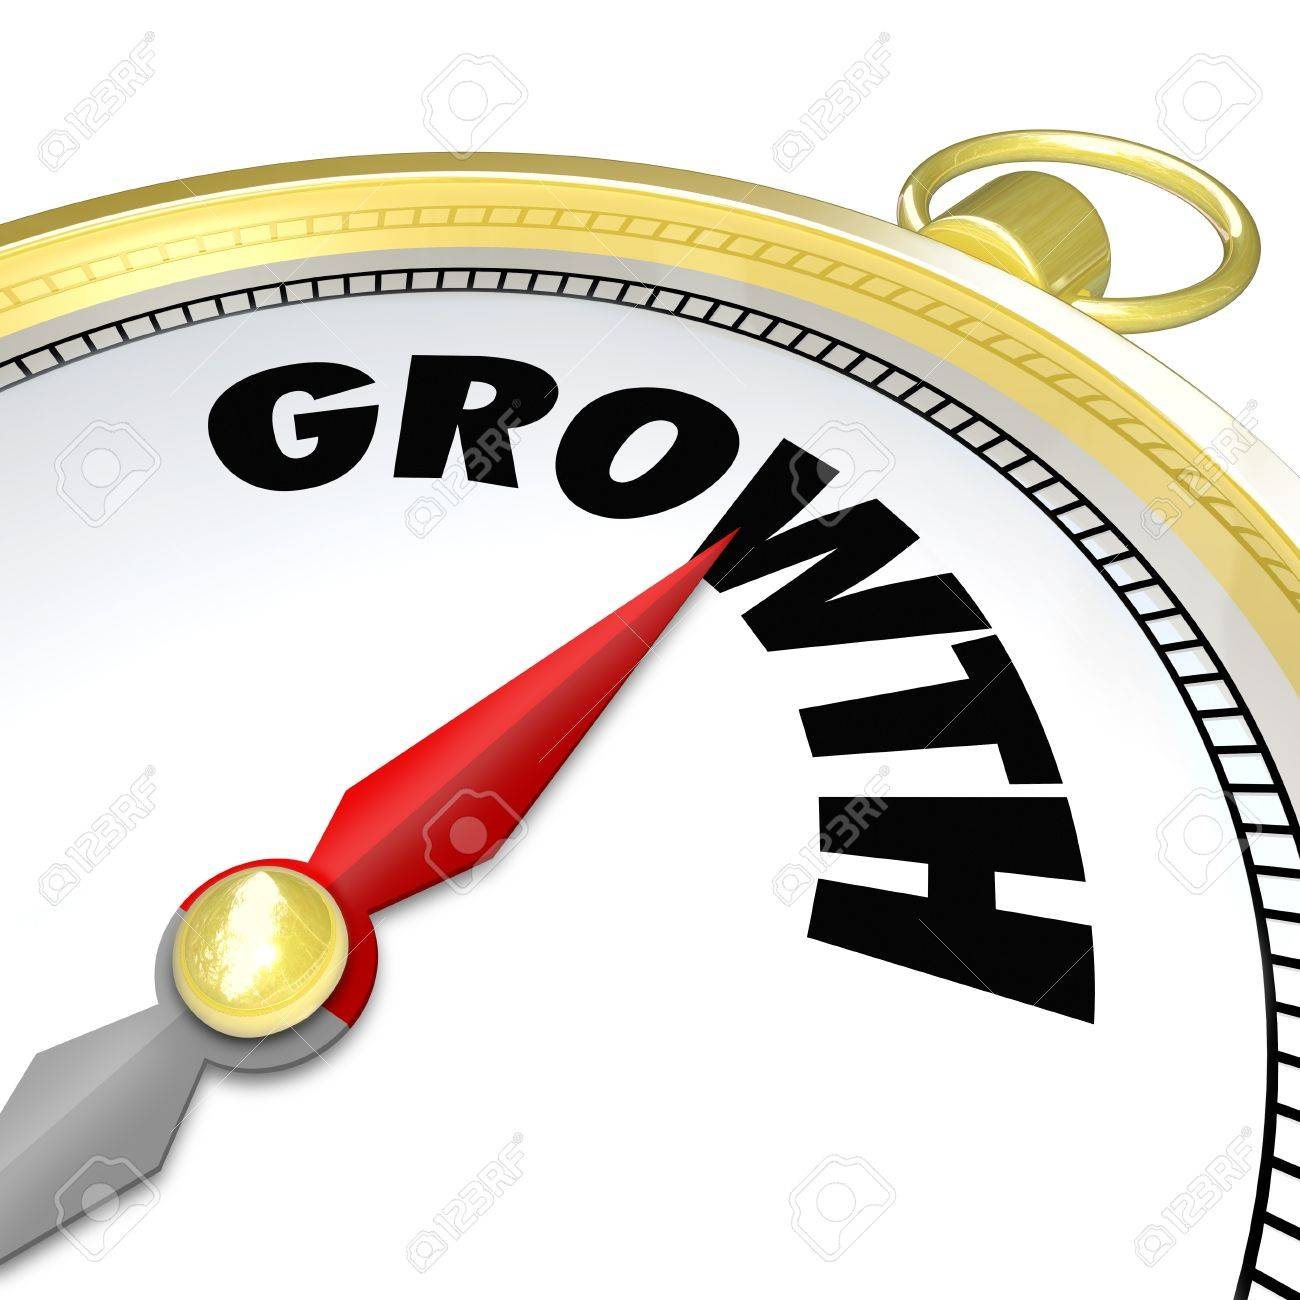 The Word Growth On A Gold Compass Symbolizing Advancement ...